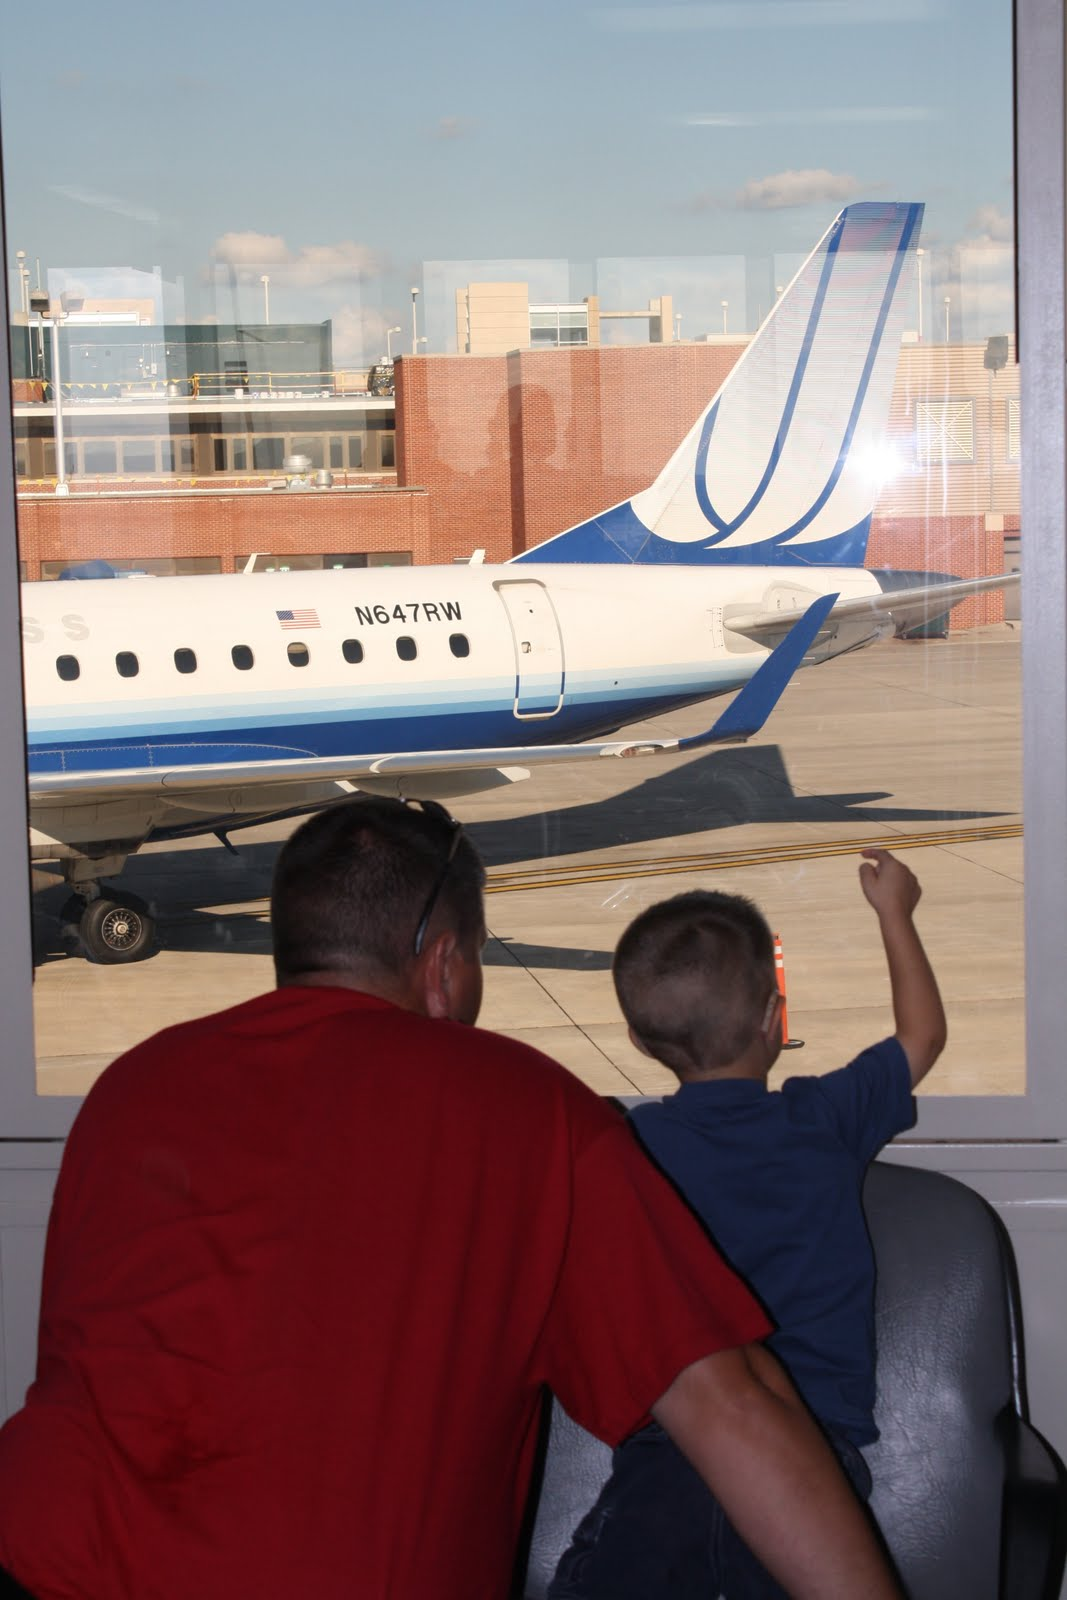 my first air plane ride Watch video yahoo-abc news network preparing for a comfortable plane ride begins at home flight survival guide: tips to airplane comfort.